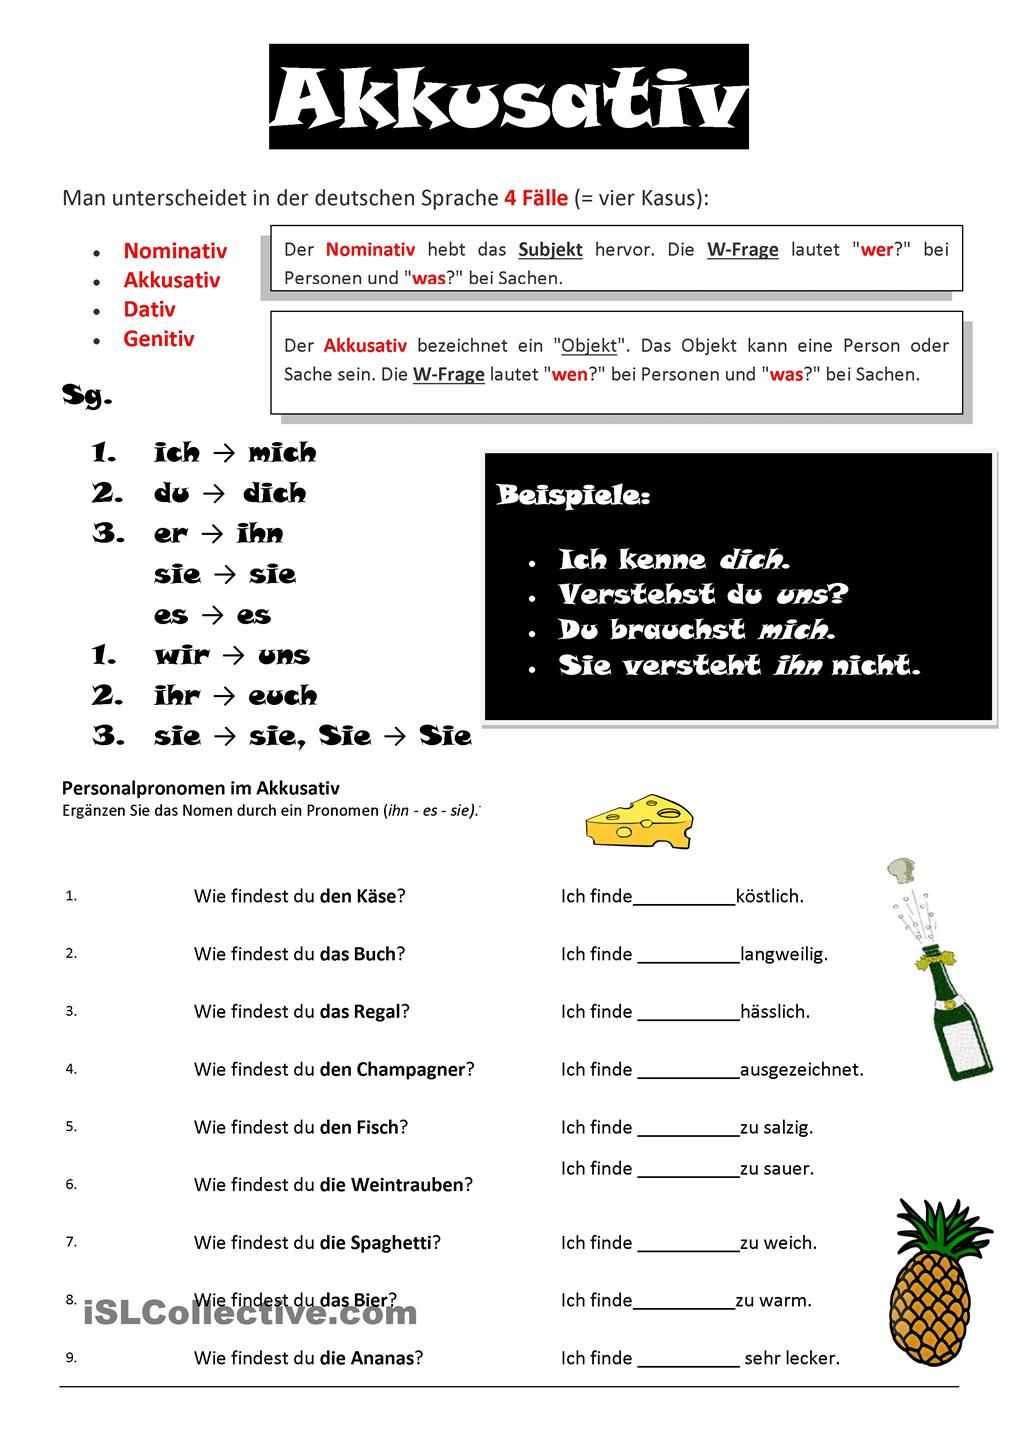 akkusativ | Deutschkurs | German grammar, German language ...